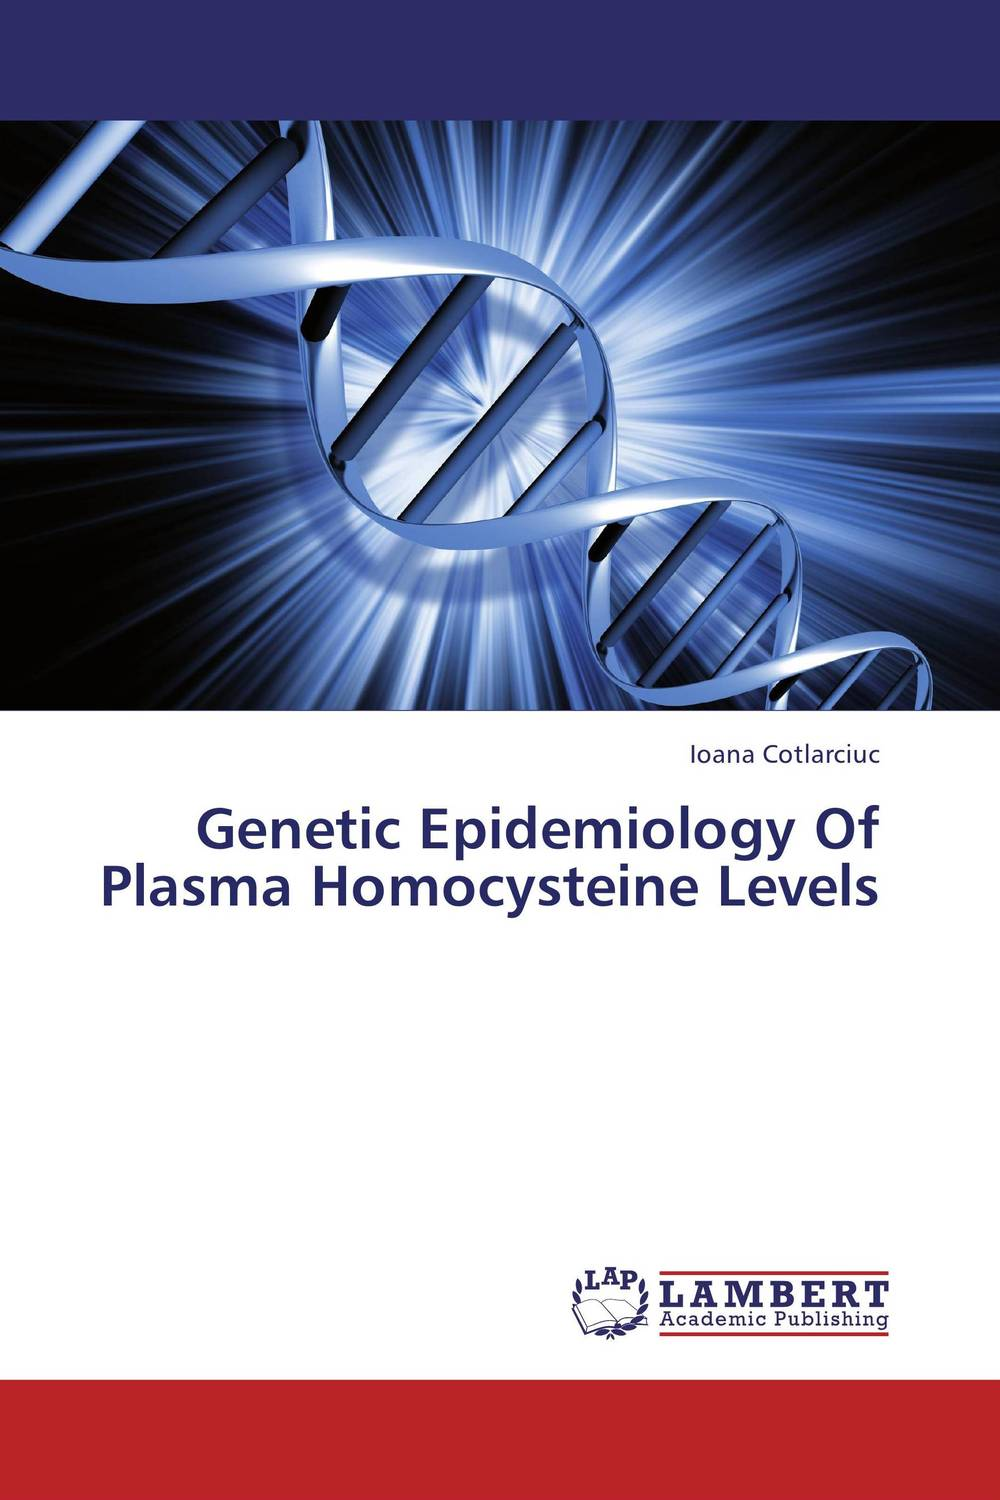 Genetic Epidemiology Of Plasma Homocysteine Levels abo and genetic risk factors associated with venous thrombosis